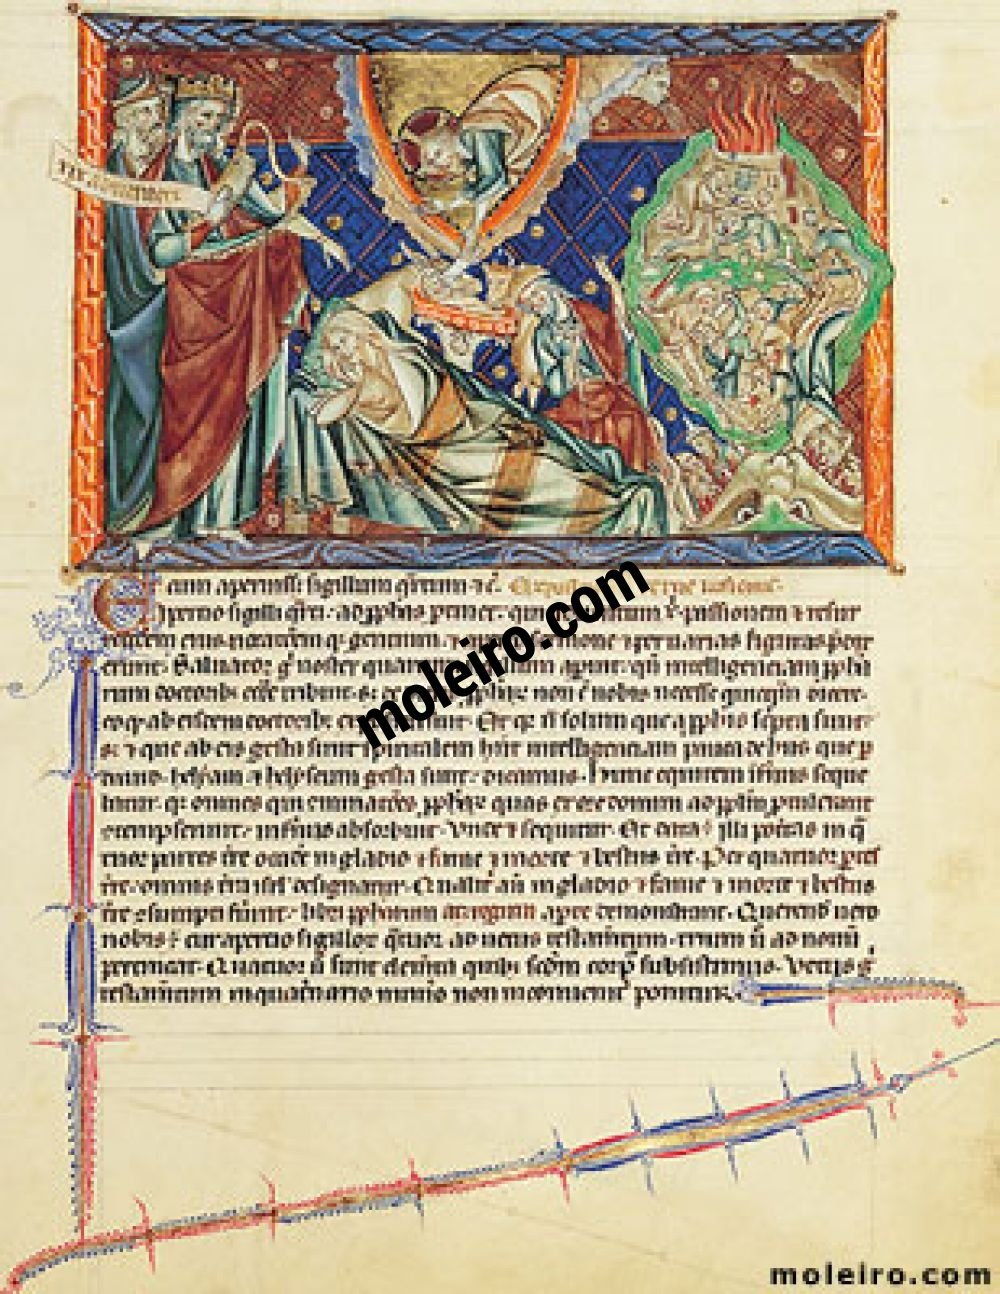 Gulbenkian Apocalypse f. 11r, Prophets foretelling Christ's Nativity and the destrucción of Israel